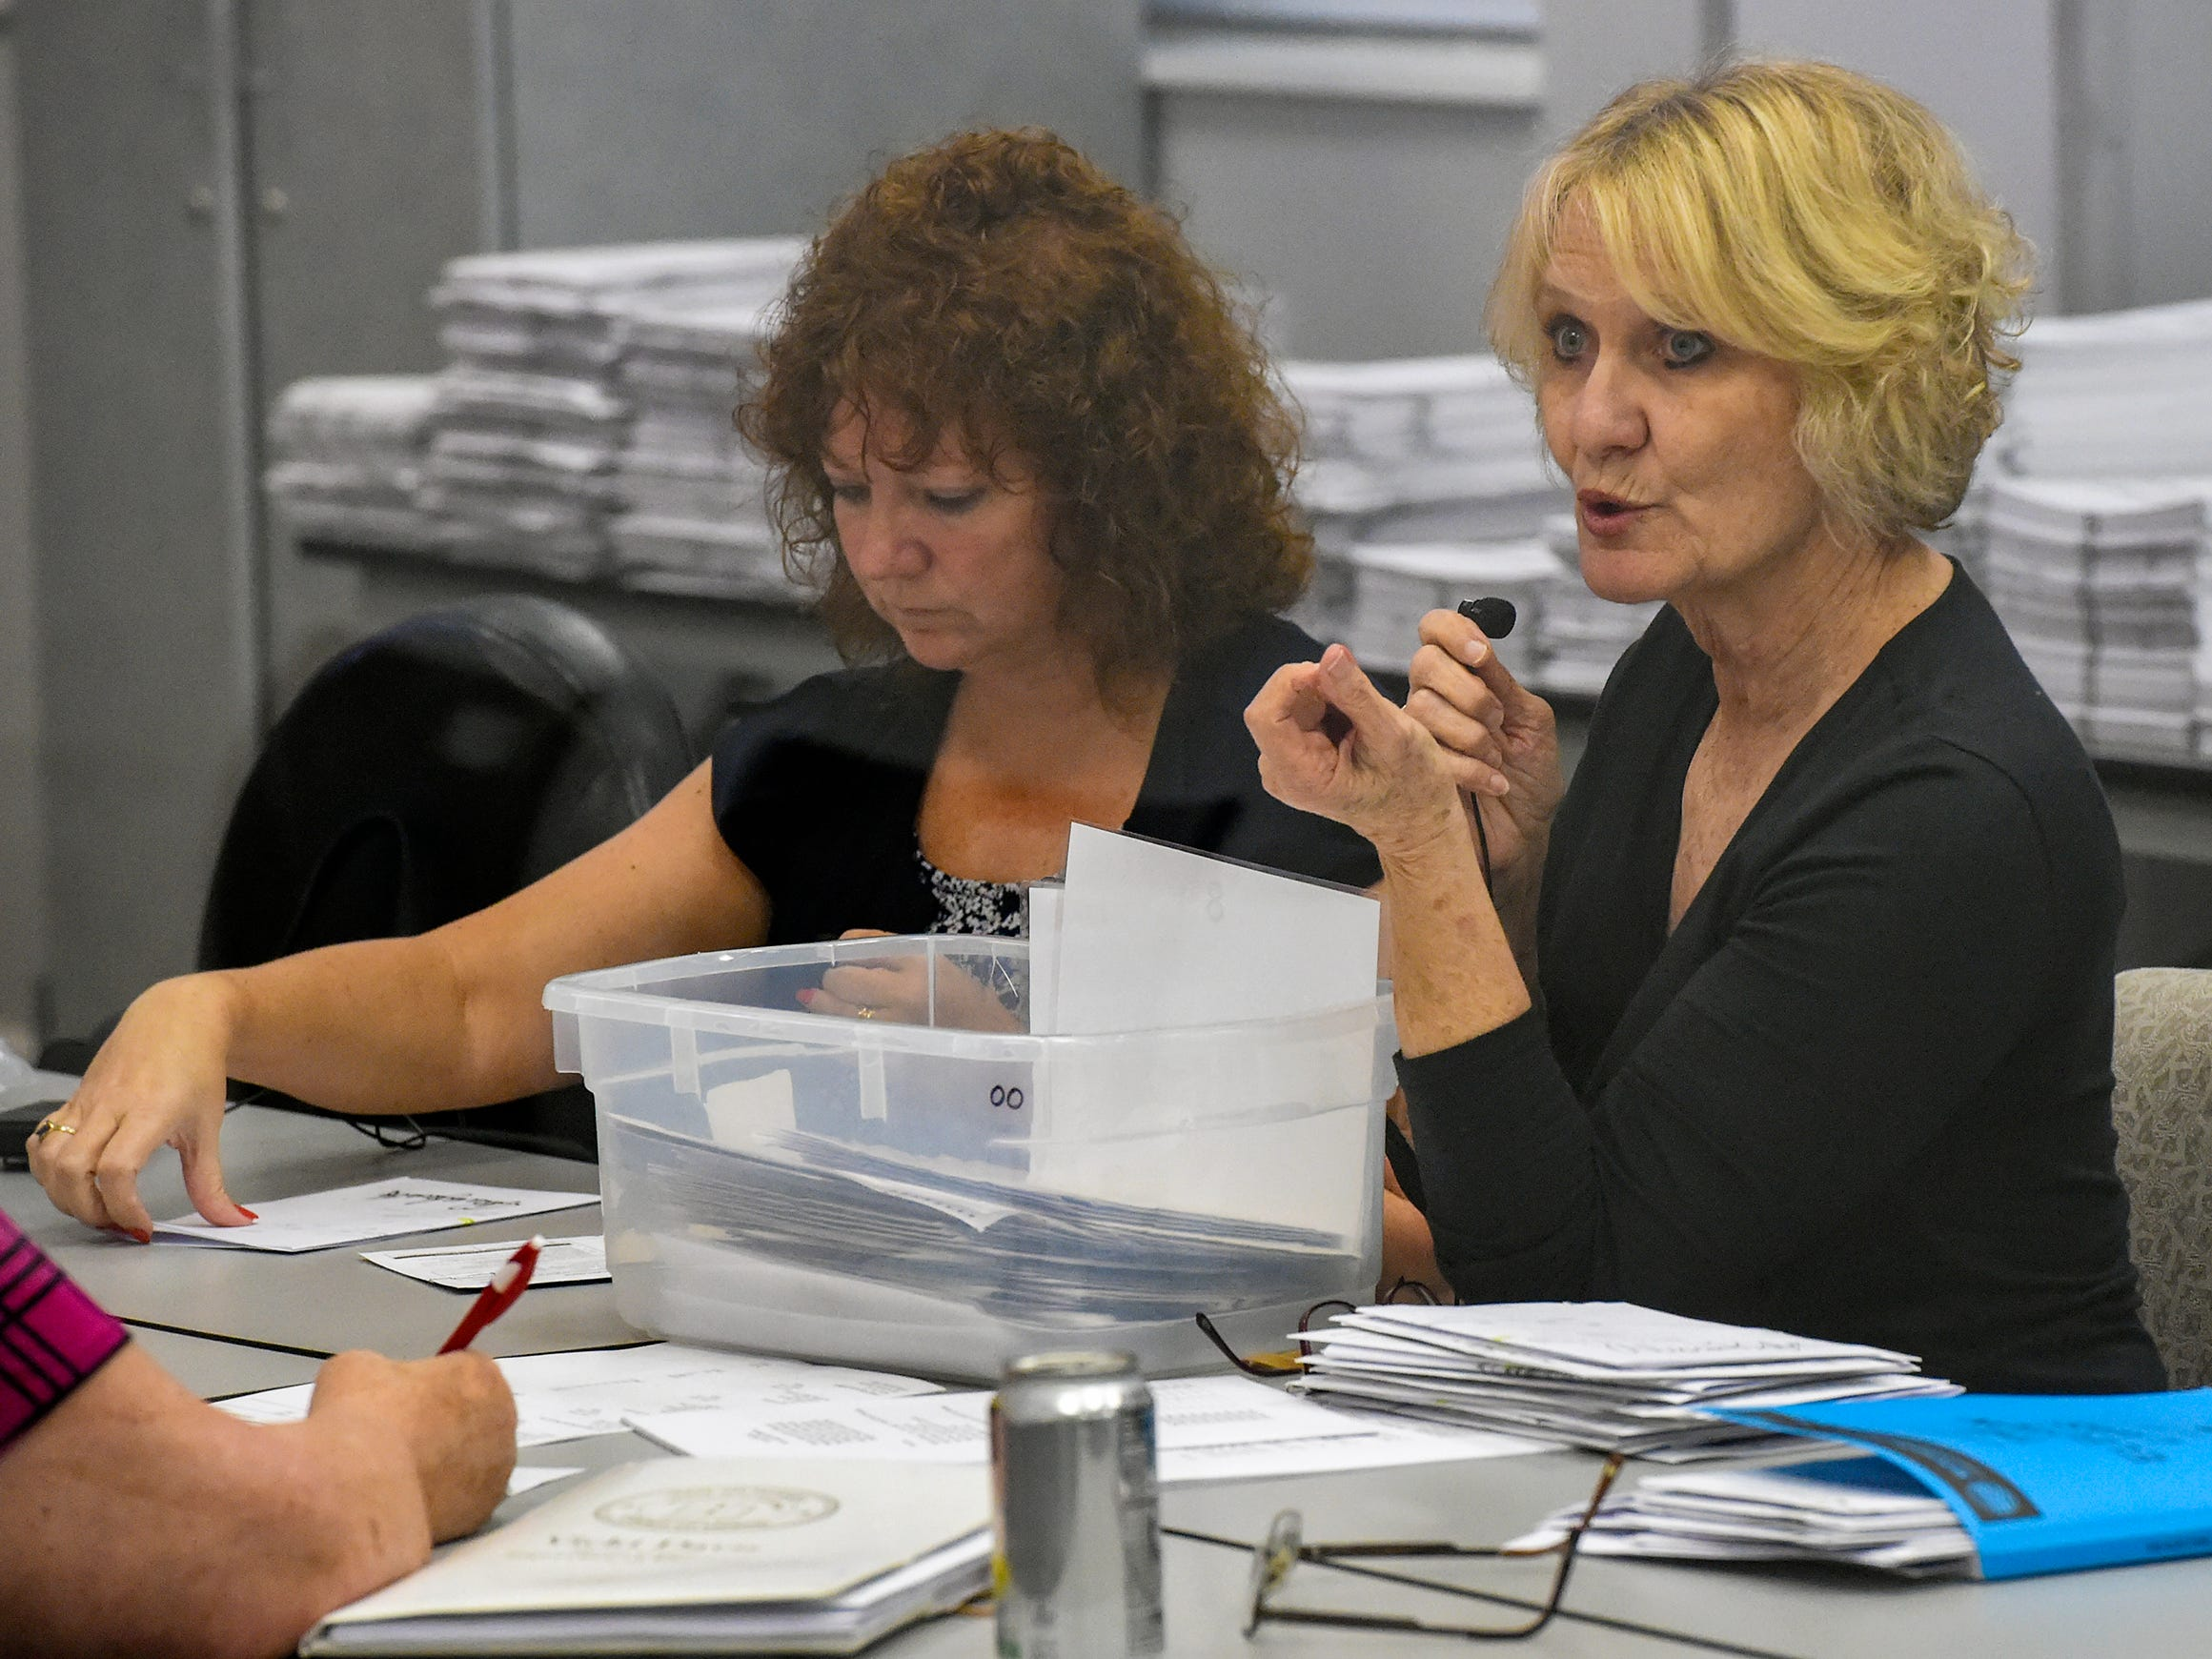 Members of the Martin County Elections Canvassing Board review provisional ballots Thursday, Nov. 8, 2018, at the Martin County Supervisor of Elections building on Martin Luther King Jr. Boulevard in downtown Stuart. A provisional ballot is a ballot that's counted only when the Supervisor of Elections' office can verify the person who cast it is eligible to vote.